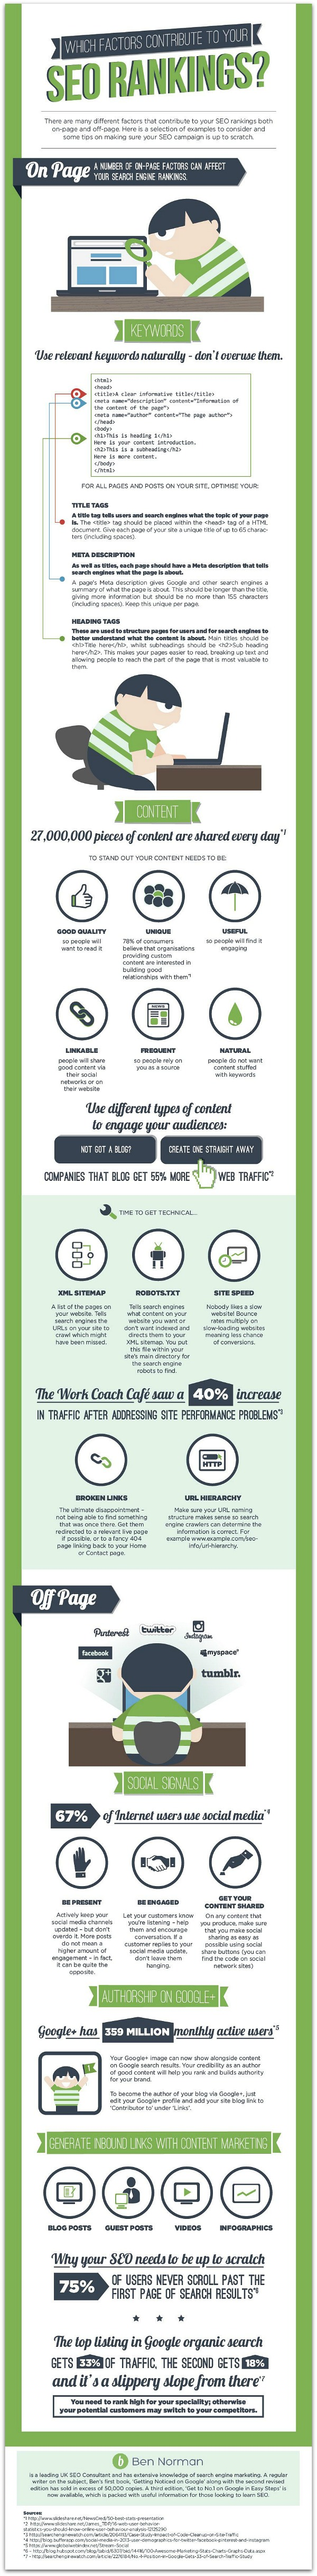 Factors_that_Contribute_to_SEO_Infographic